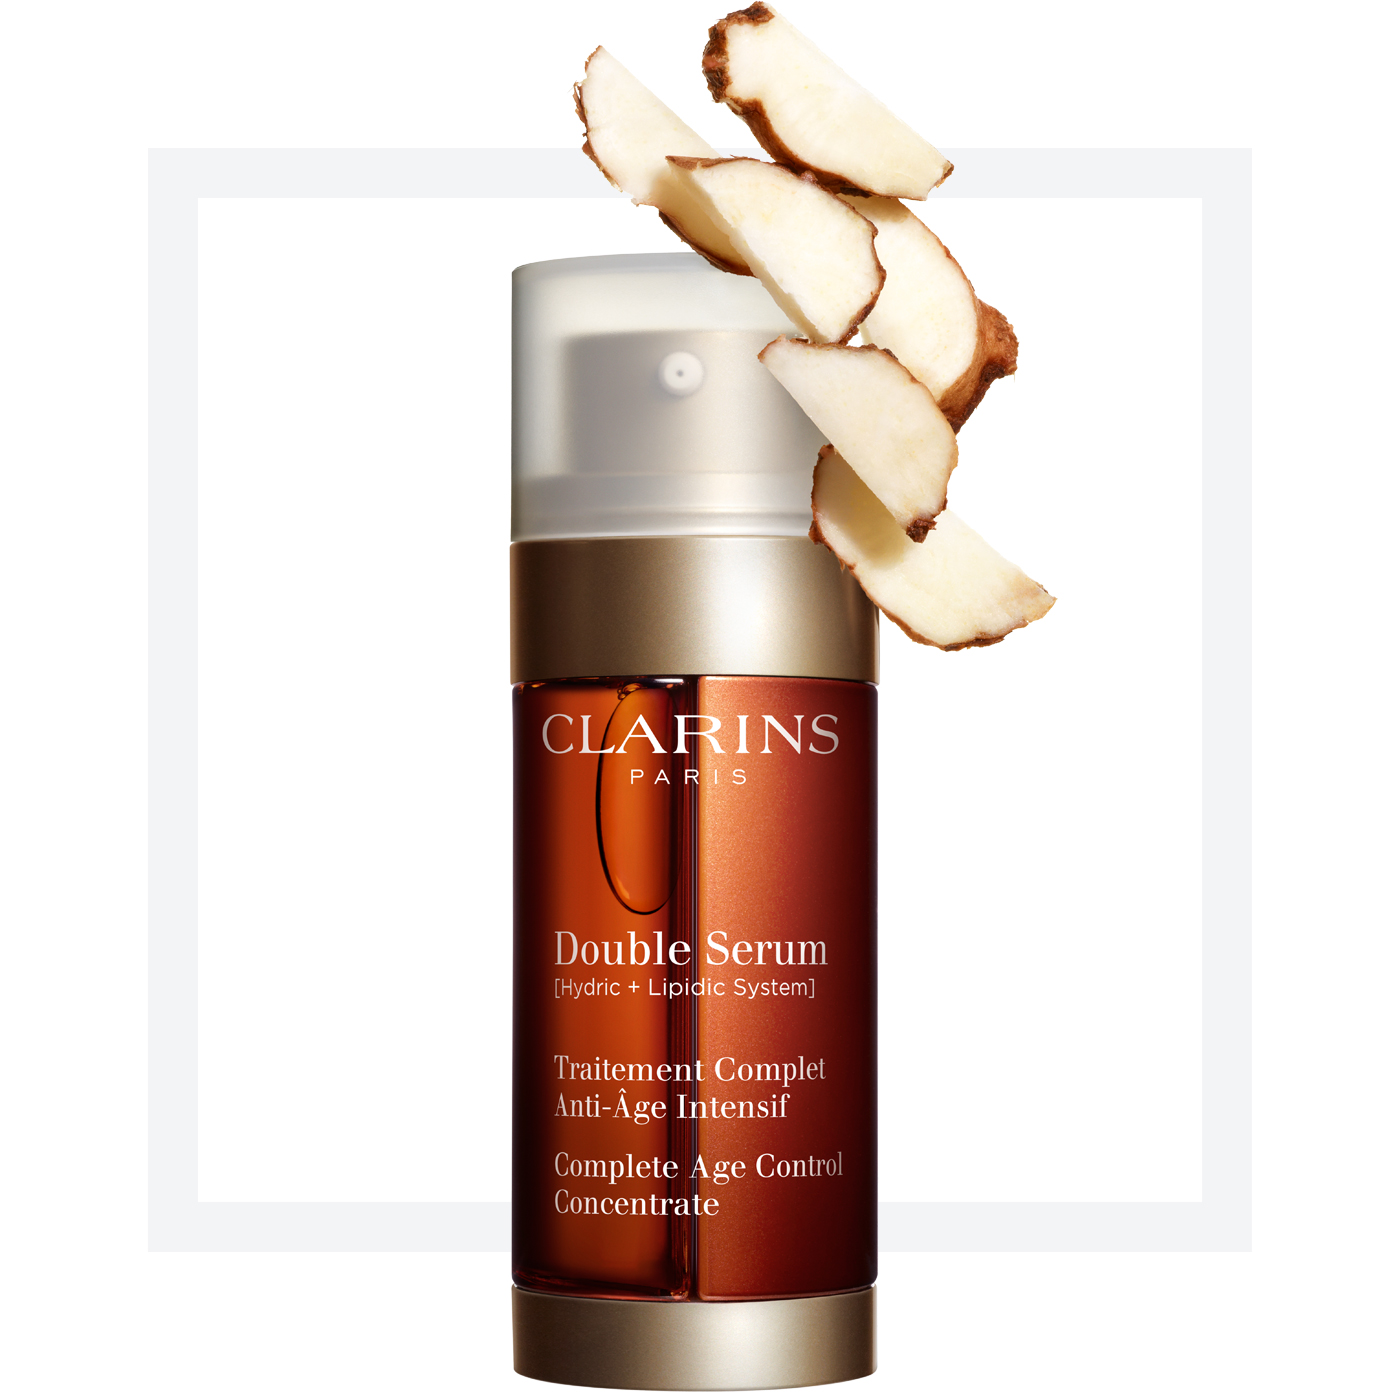 Clarins-Double-Serum-Complete-Age-Control-Concentrate-C010408020.jpg